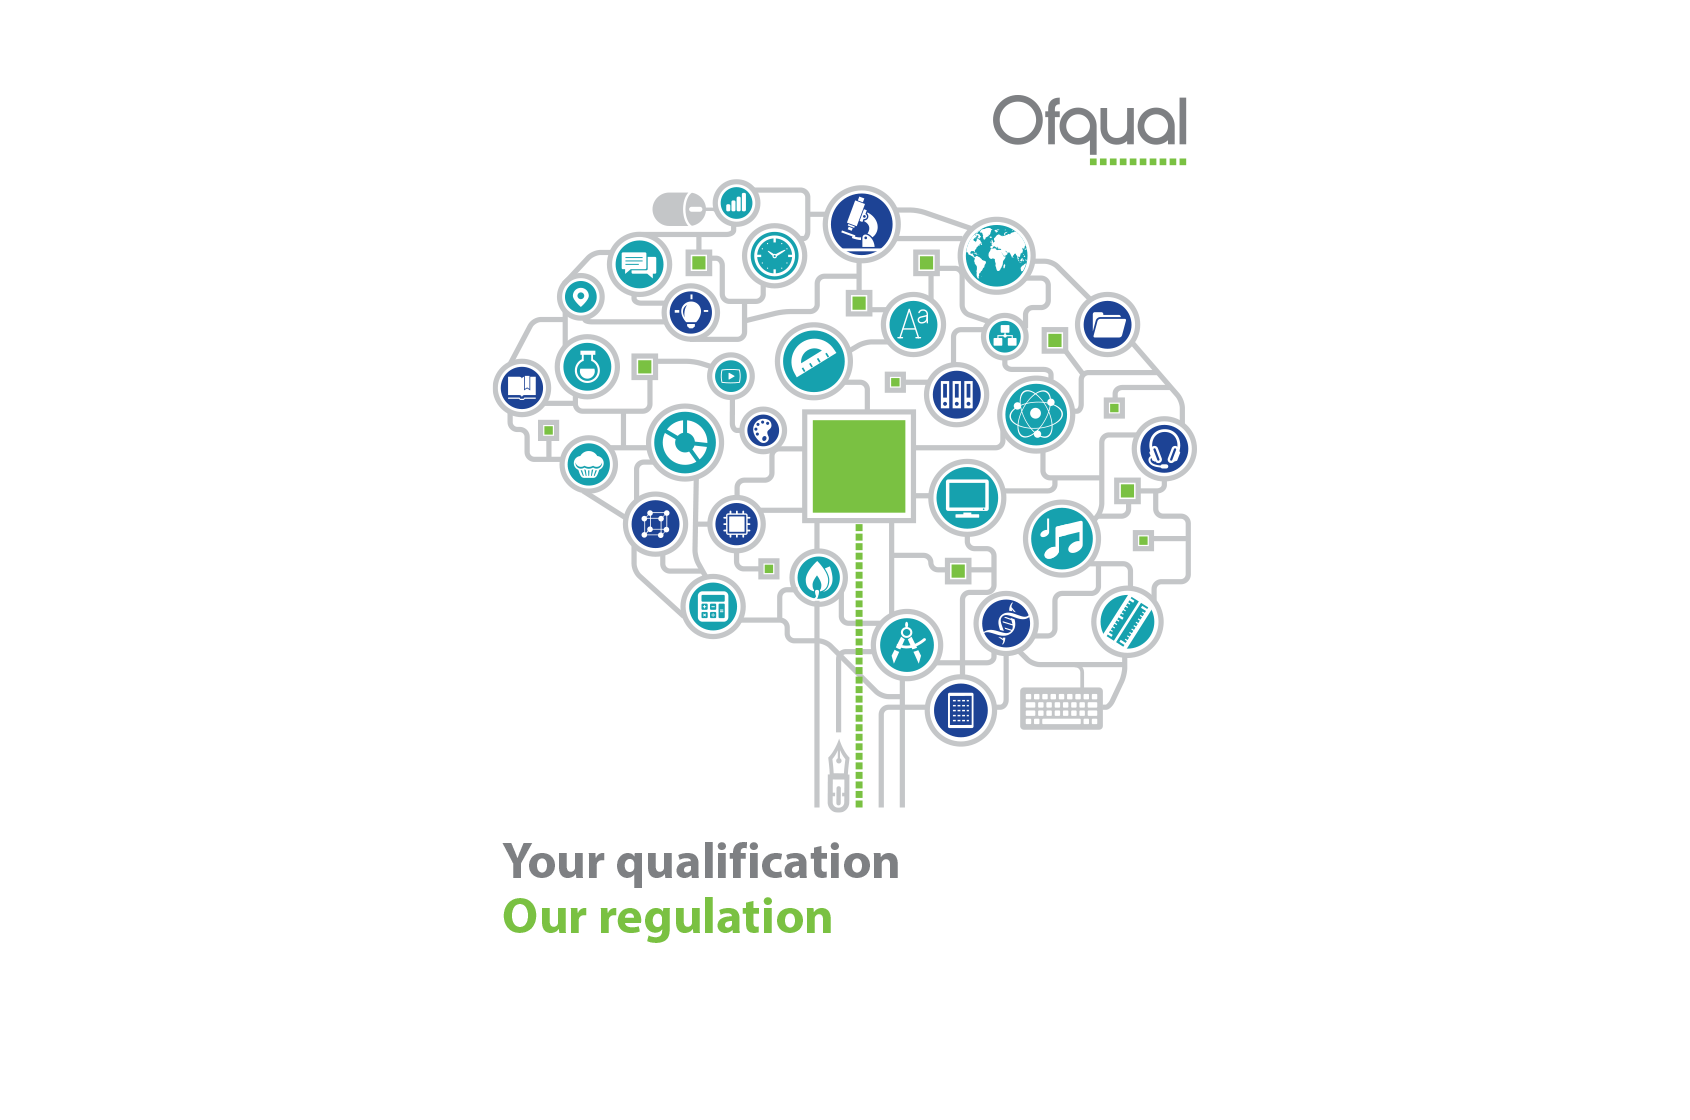 Your Qualification Our Regulation